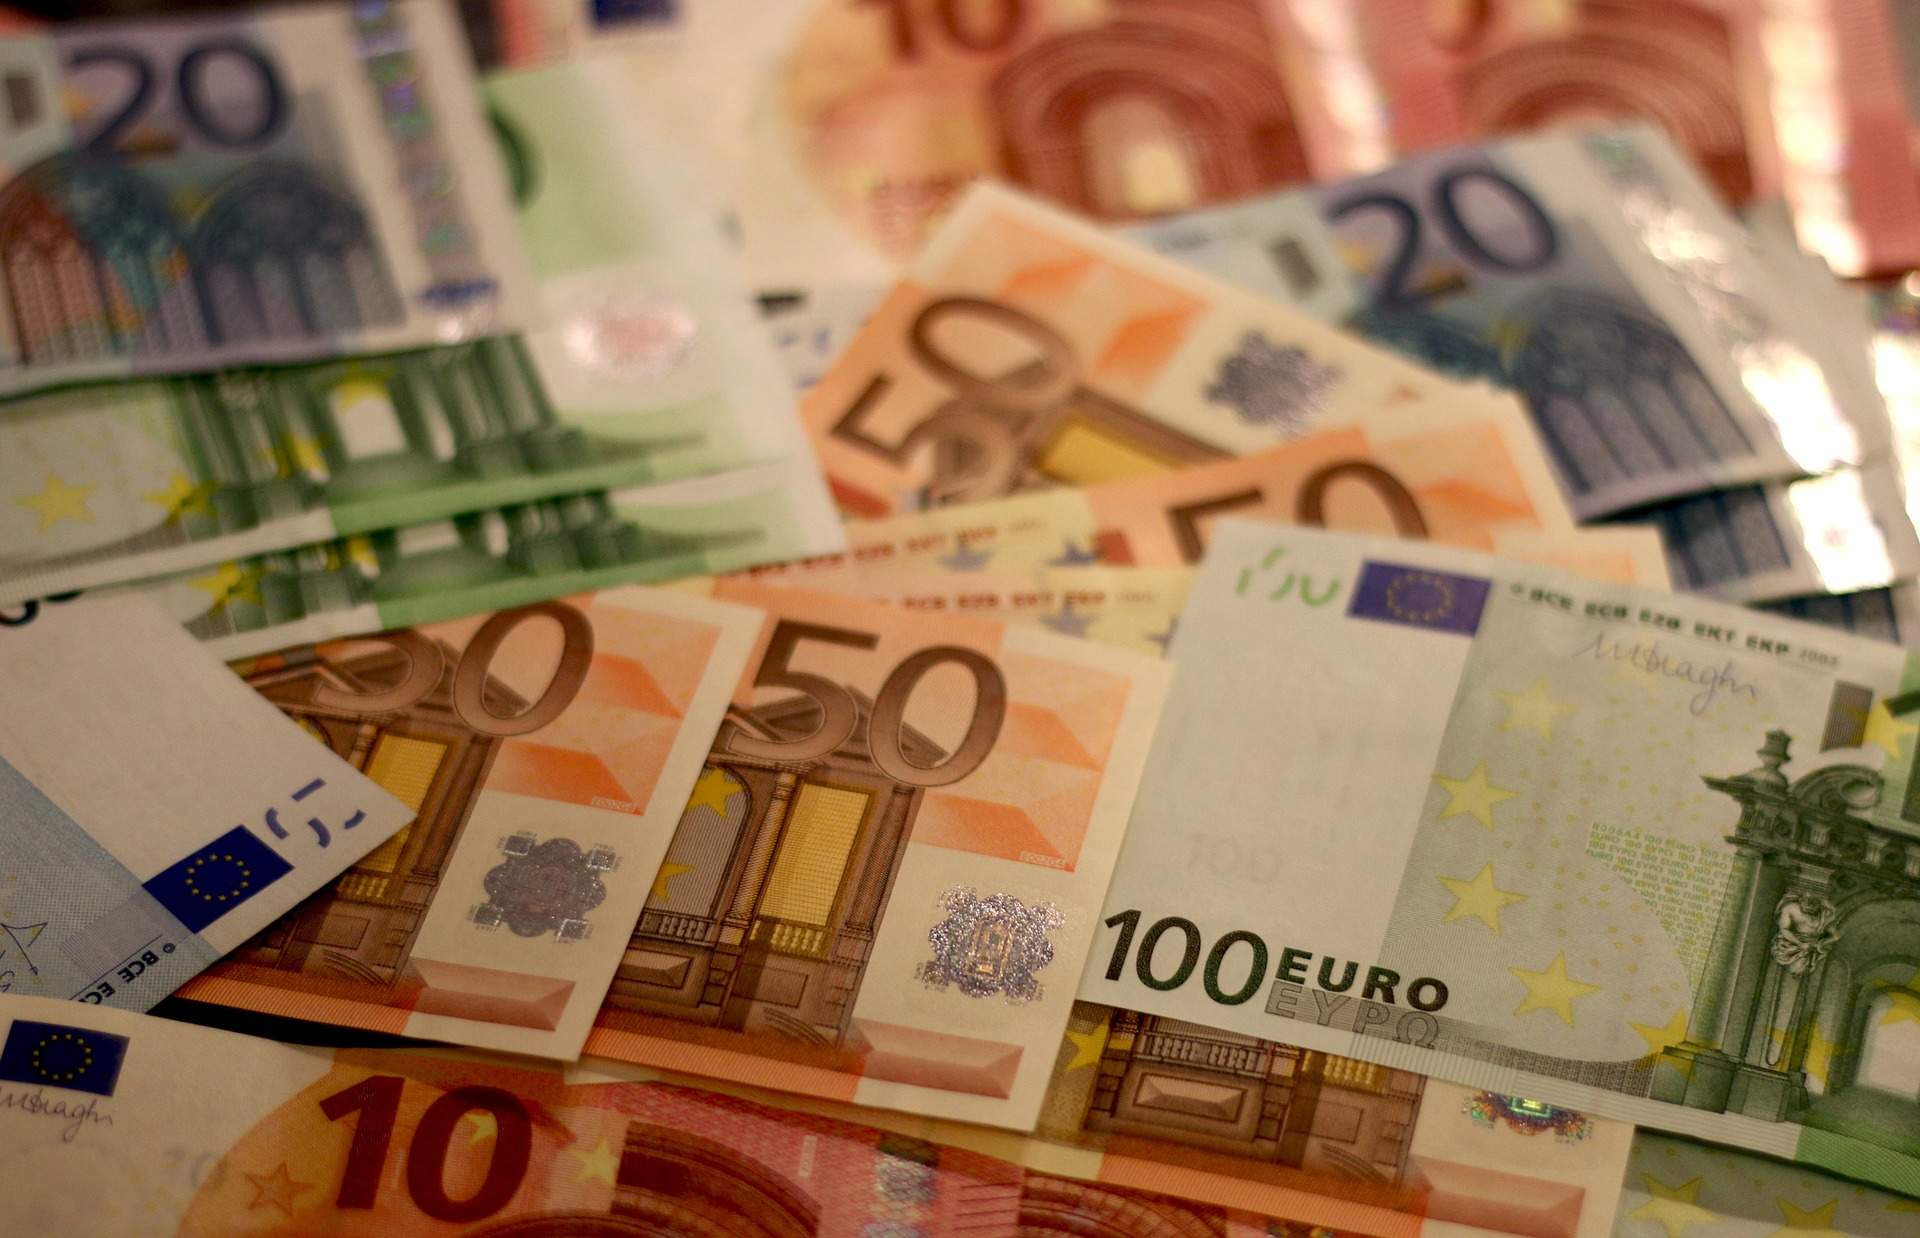 The euro is unified currency used by most of the European Union. Pic: Pixabay